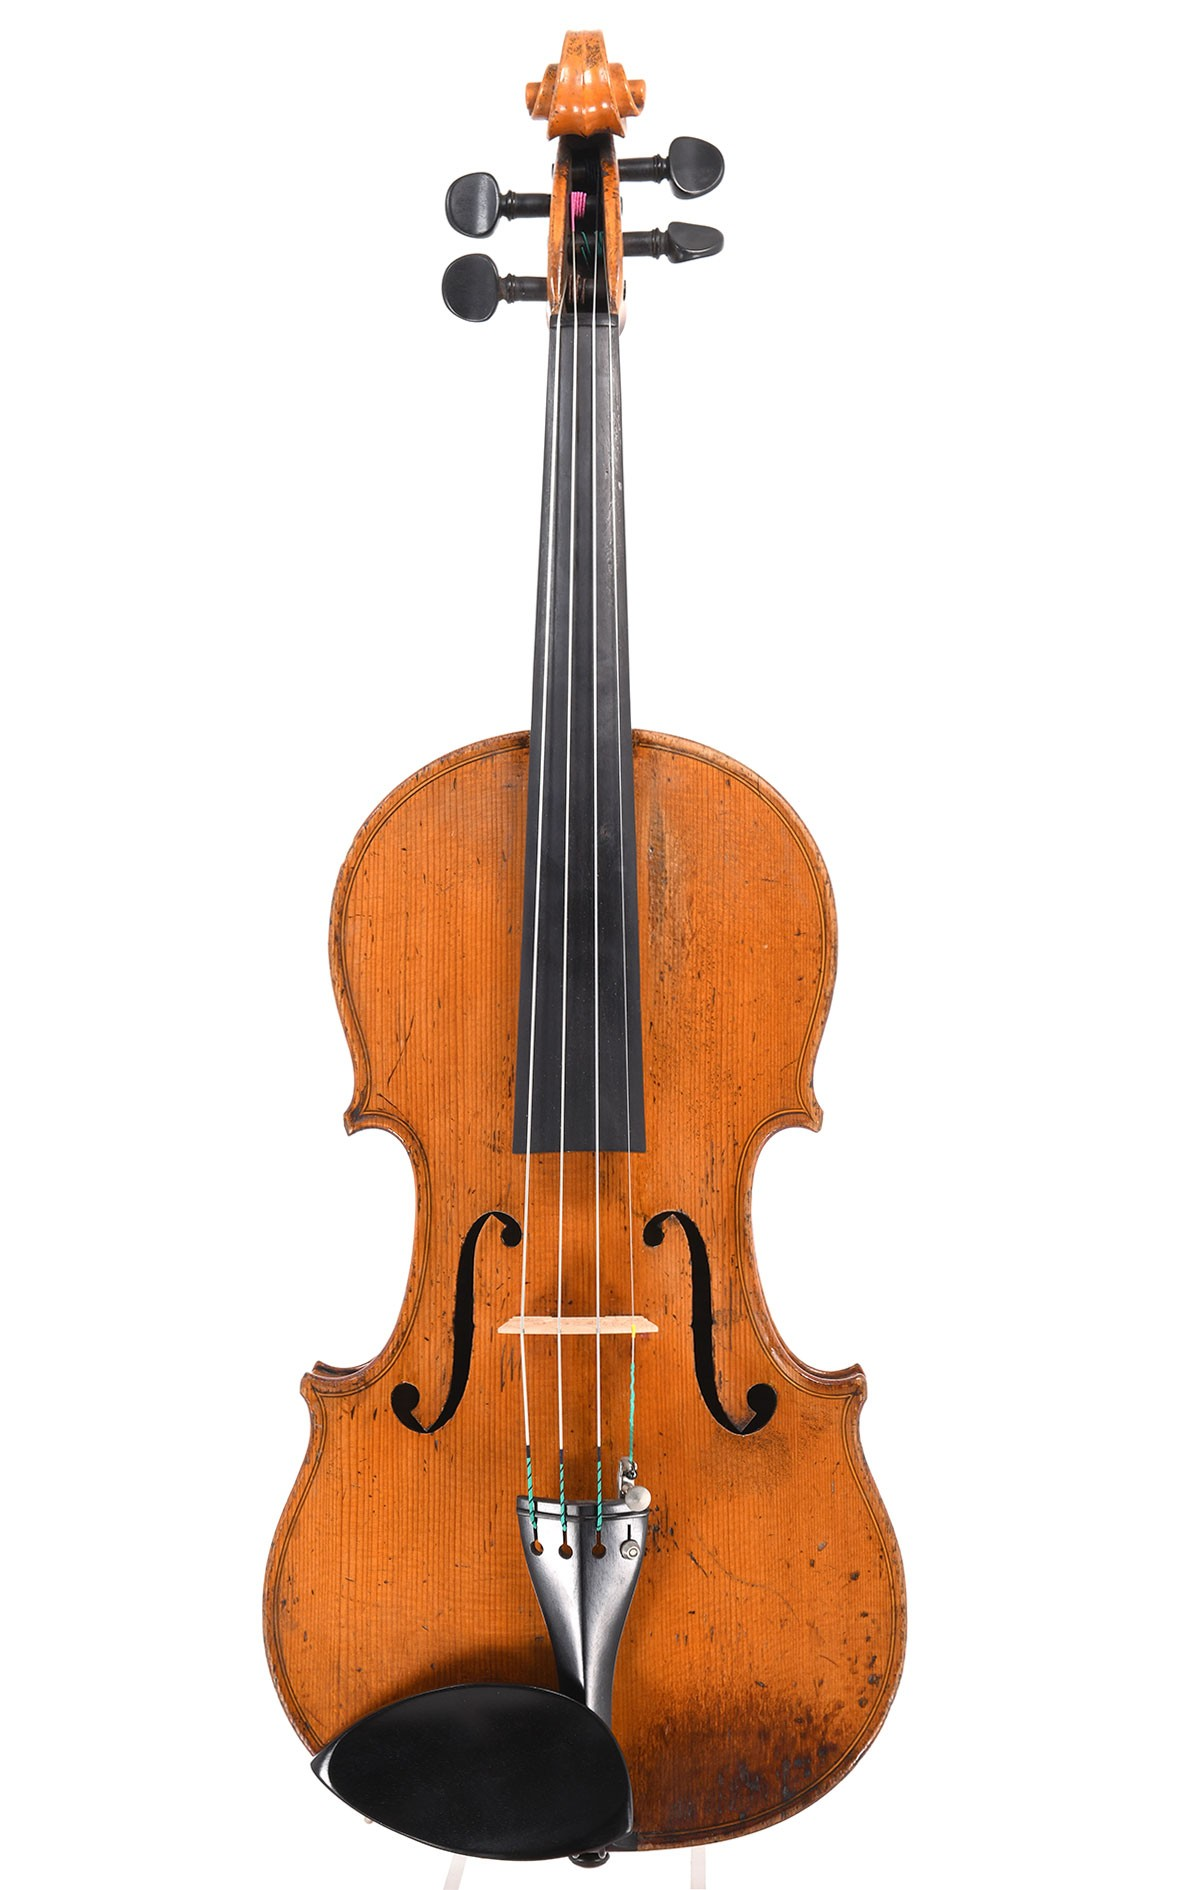 Fine French violin by Charles Buthod – a soloist instrument from around 1840